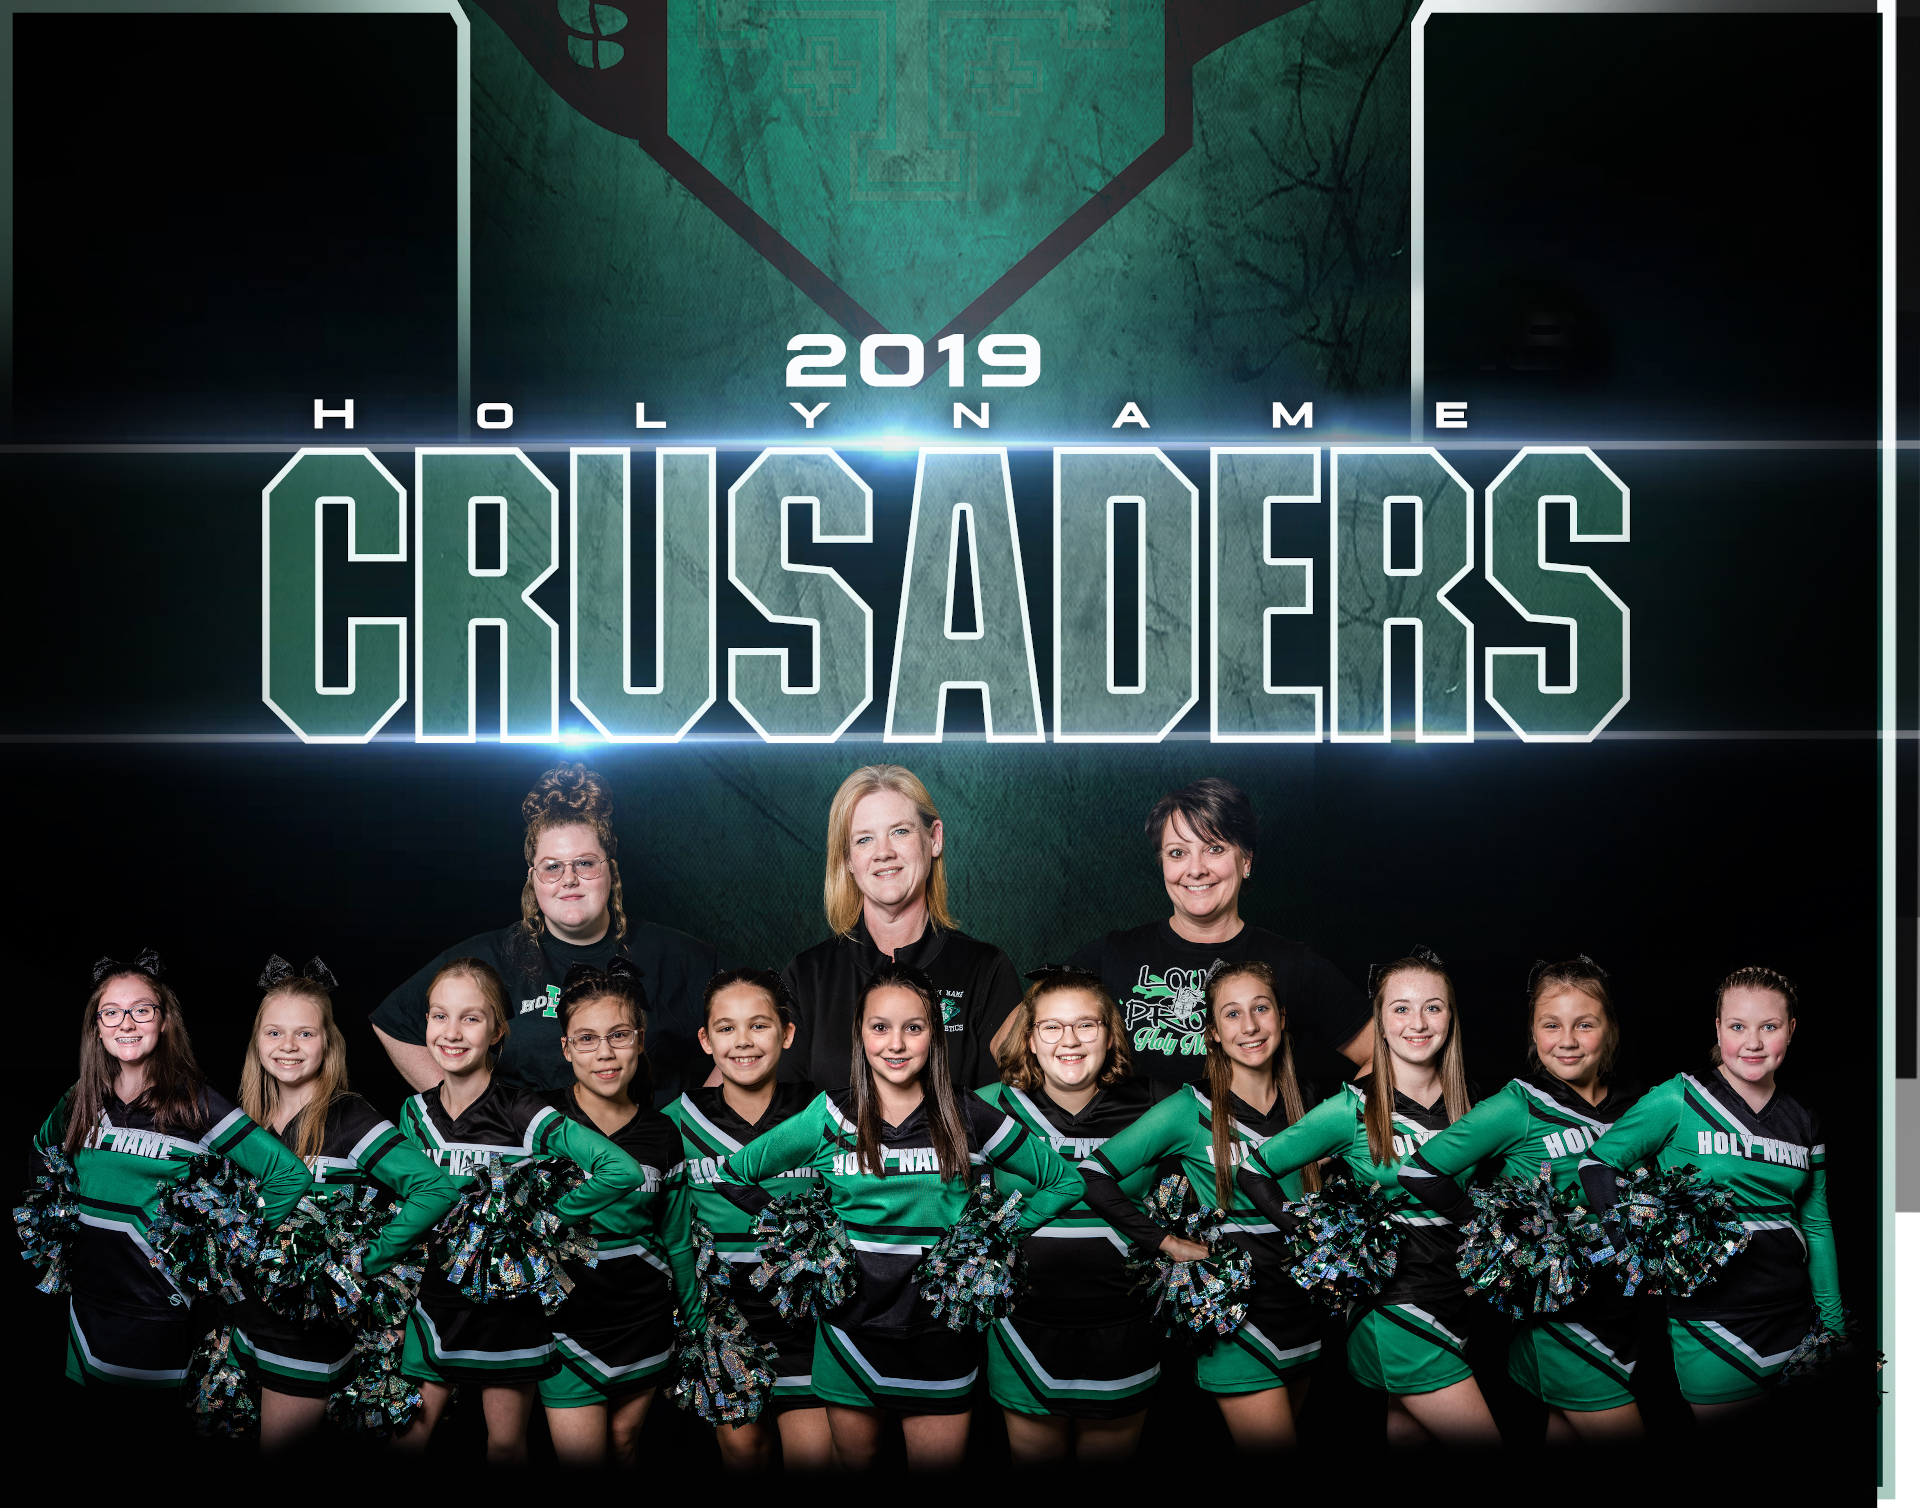 2019 Cheerleading